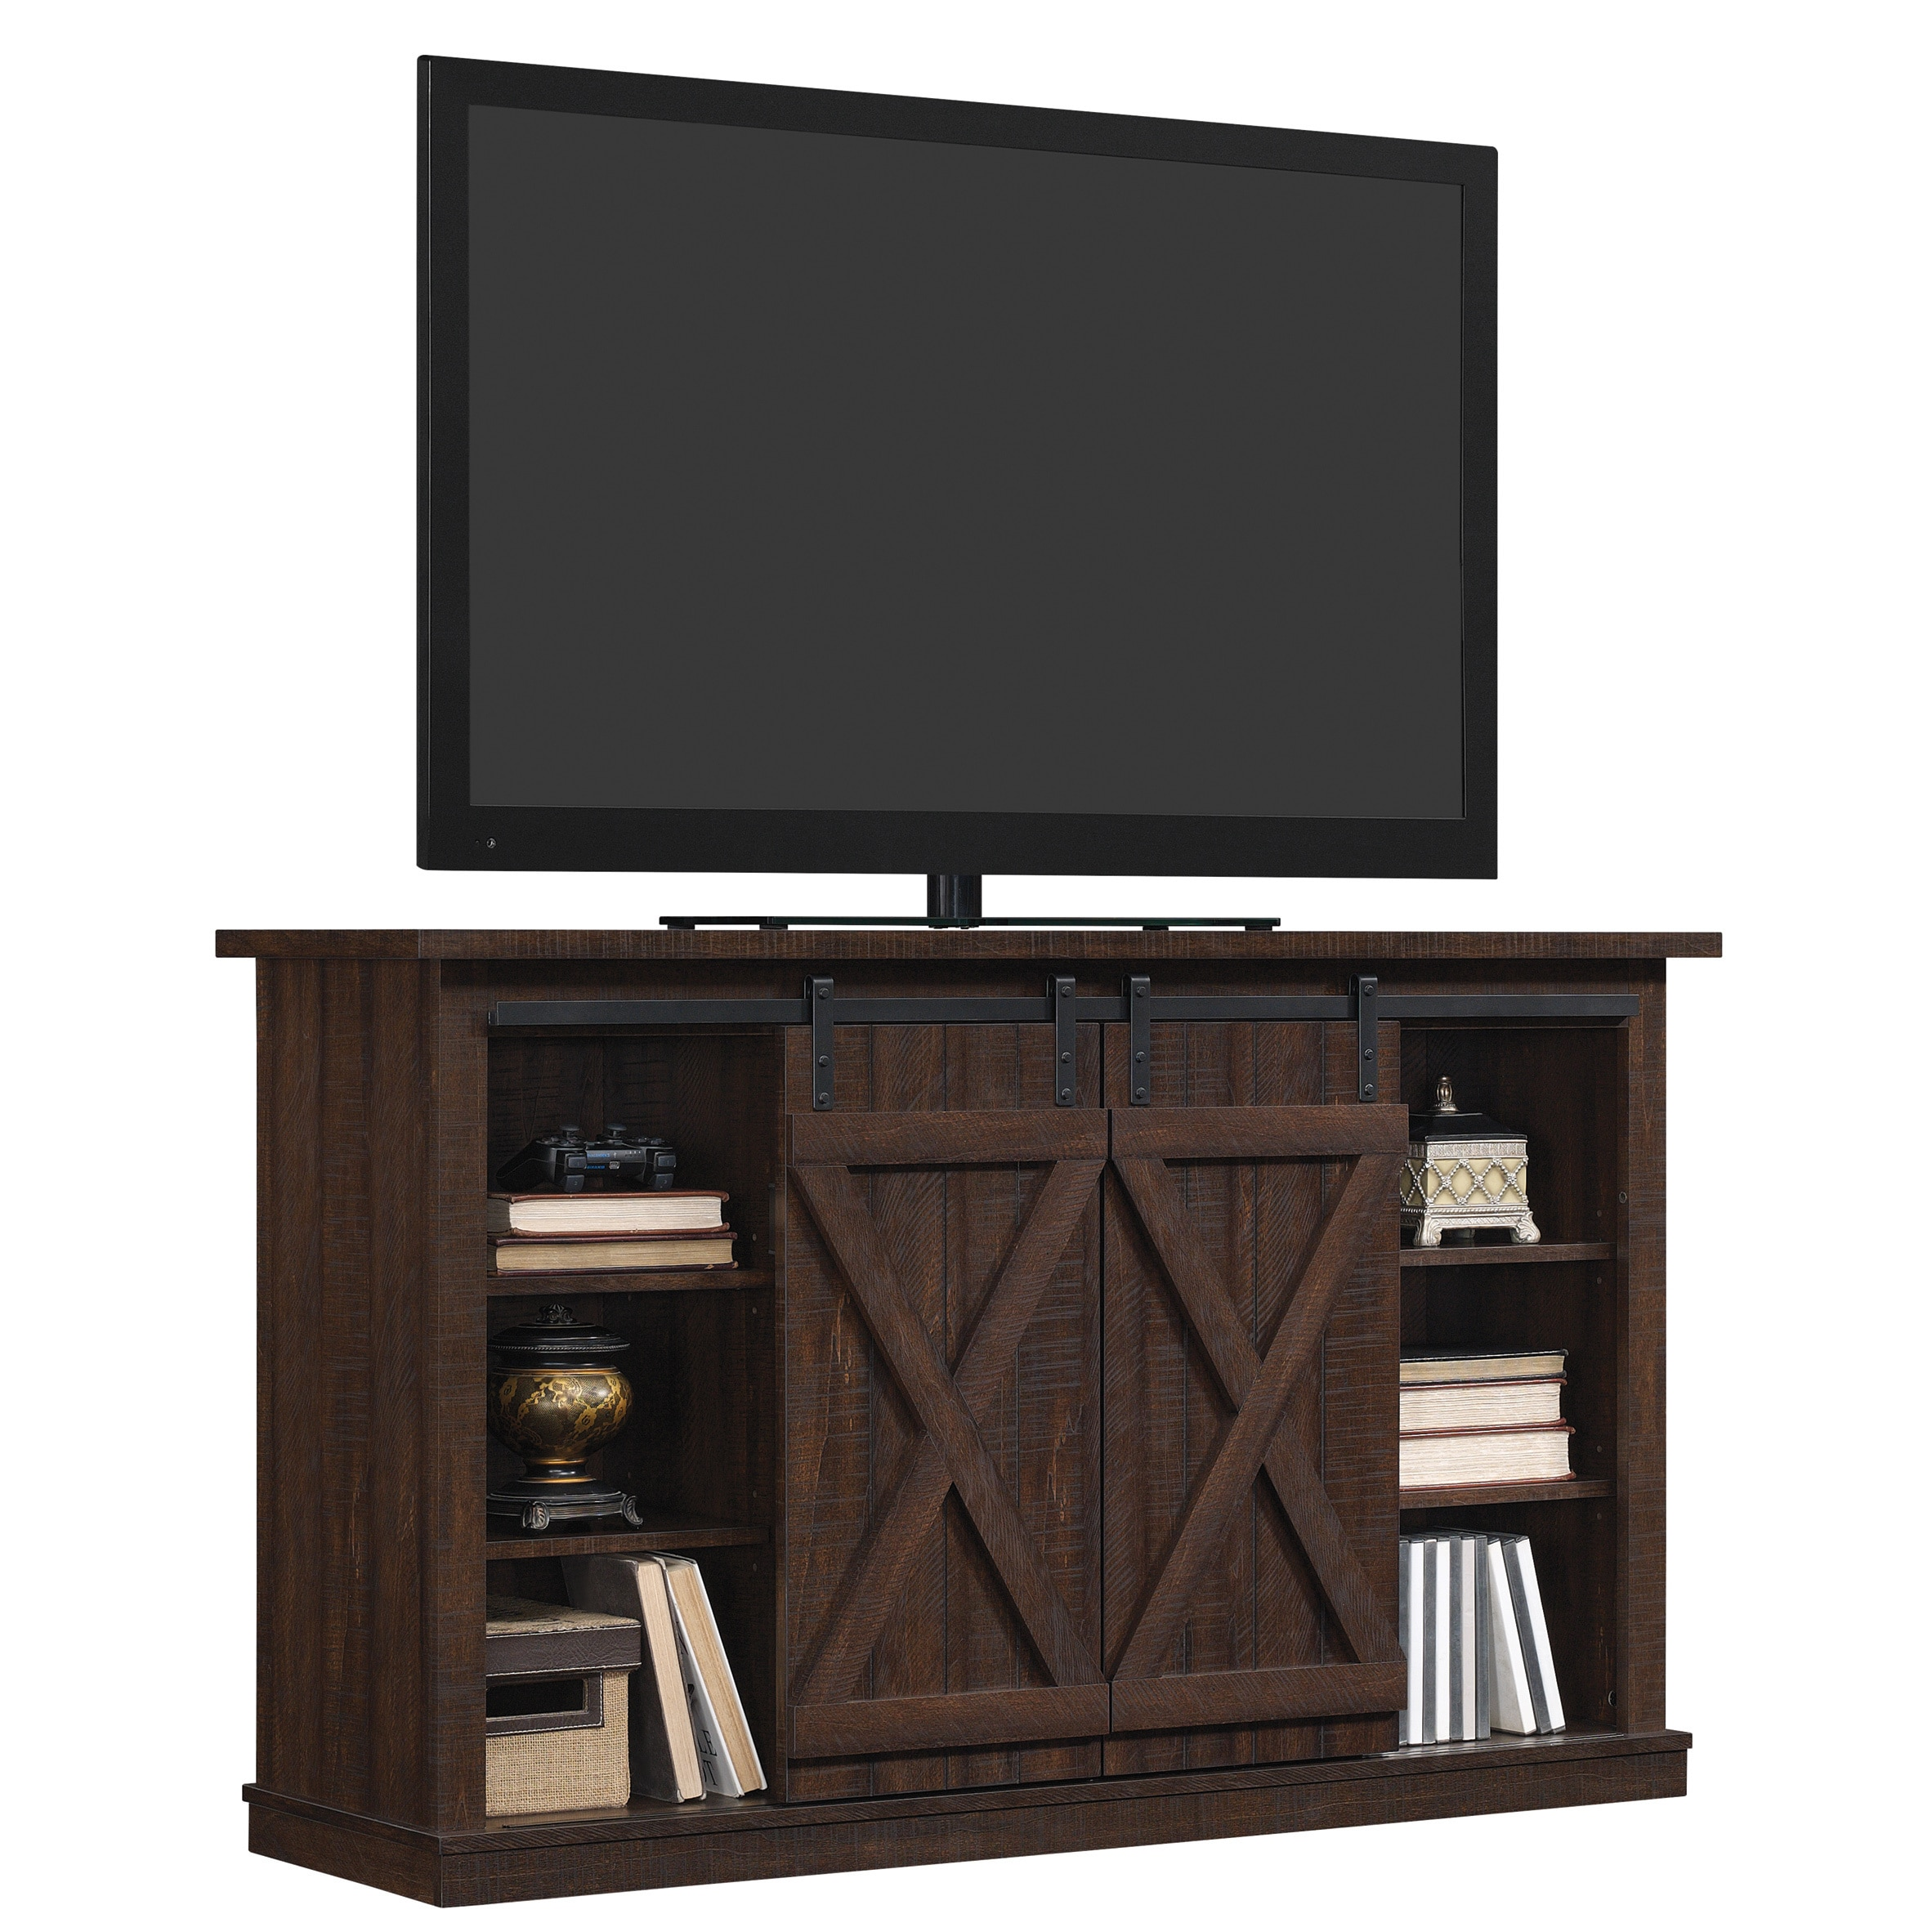 Cottonwood Tv Stand For Tvs Up To 60 Inches Sawcut Espresso Overstock 21214836